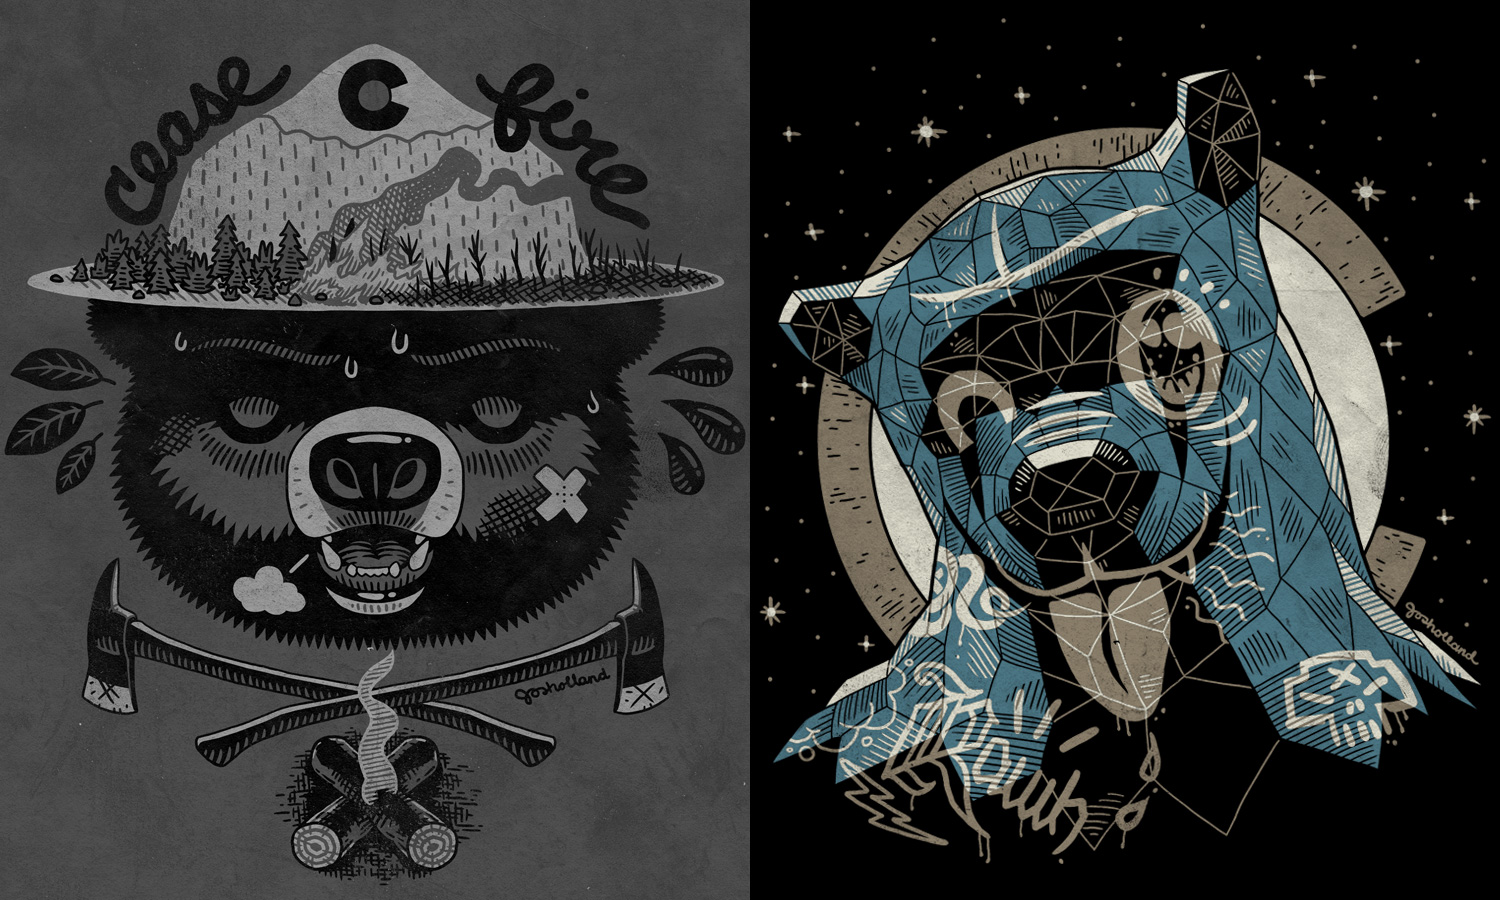 11_denver_colorado_bear_illustrations_josh_holland.jpg